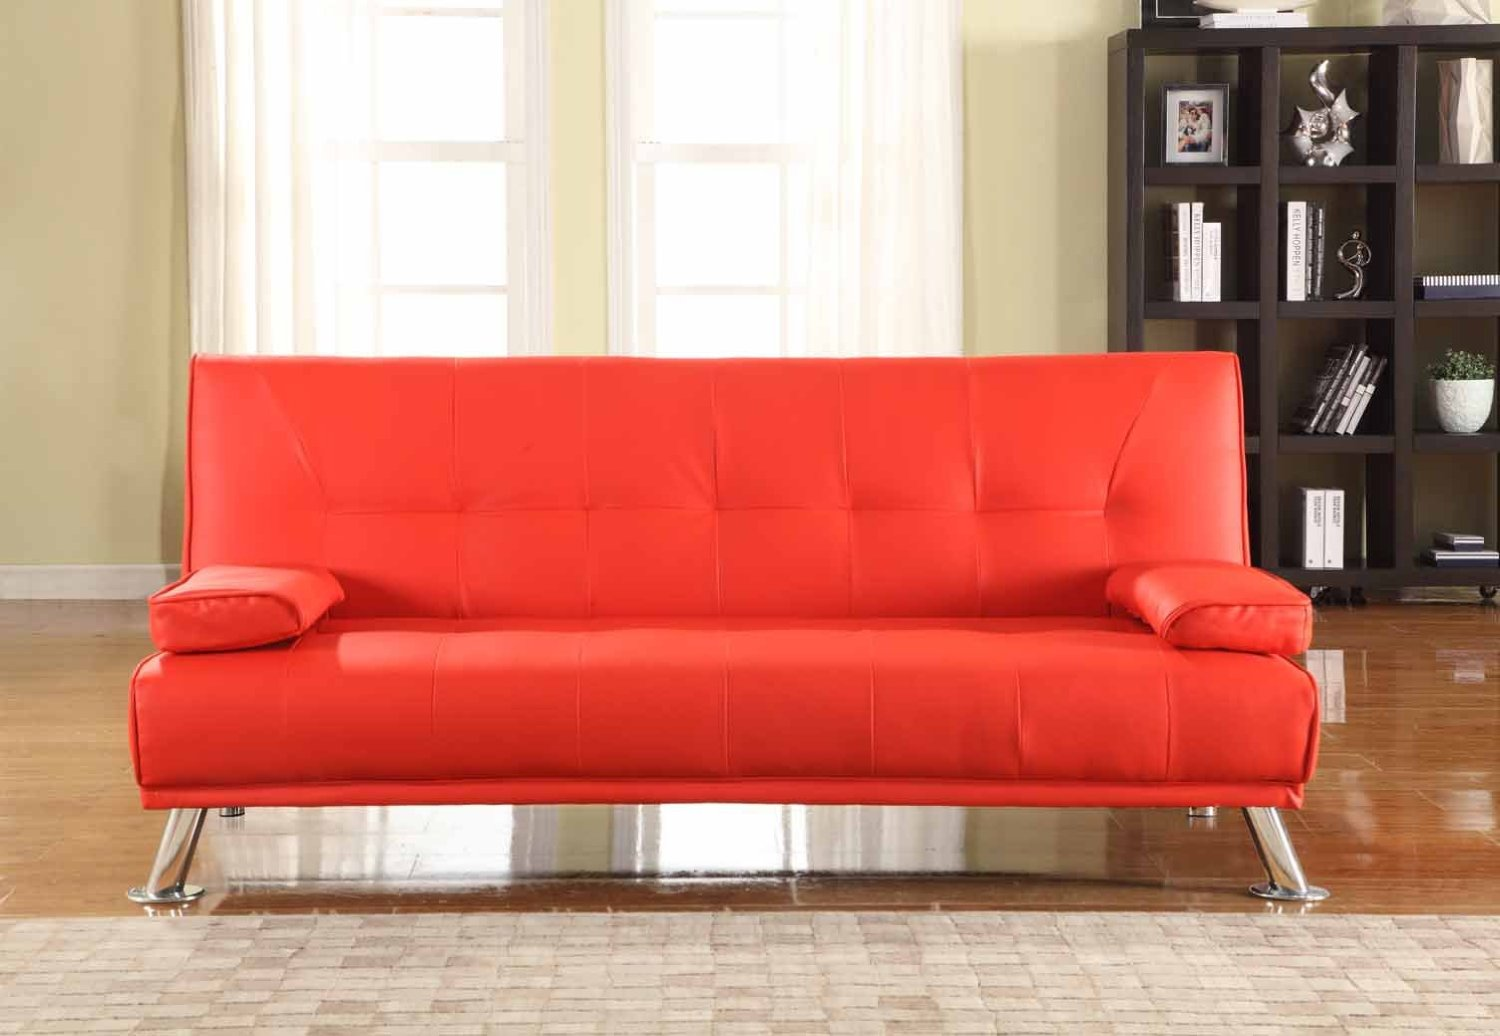 Free delivery on orders over £50. Milan Red Sofa Bed